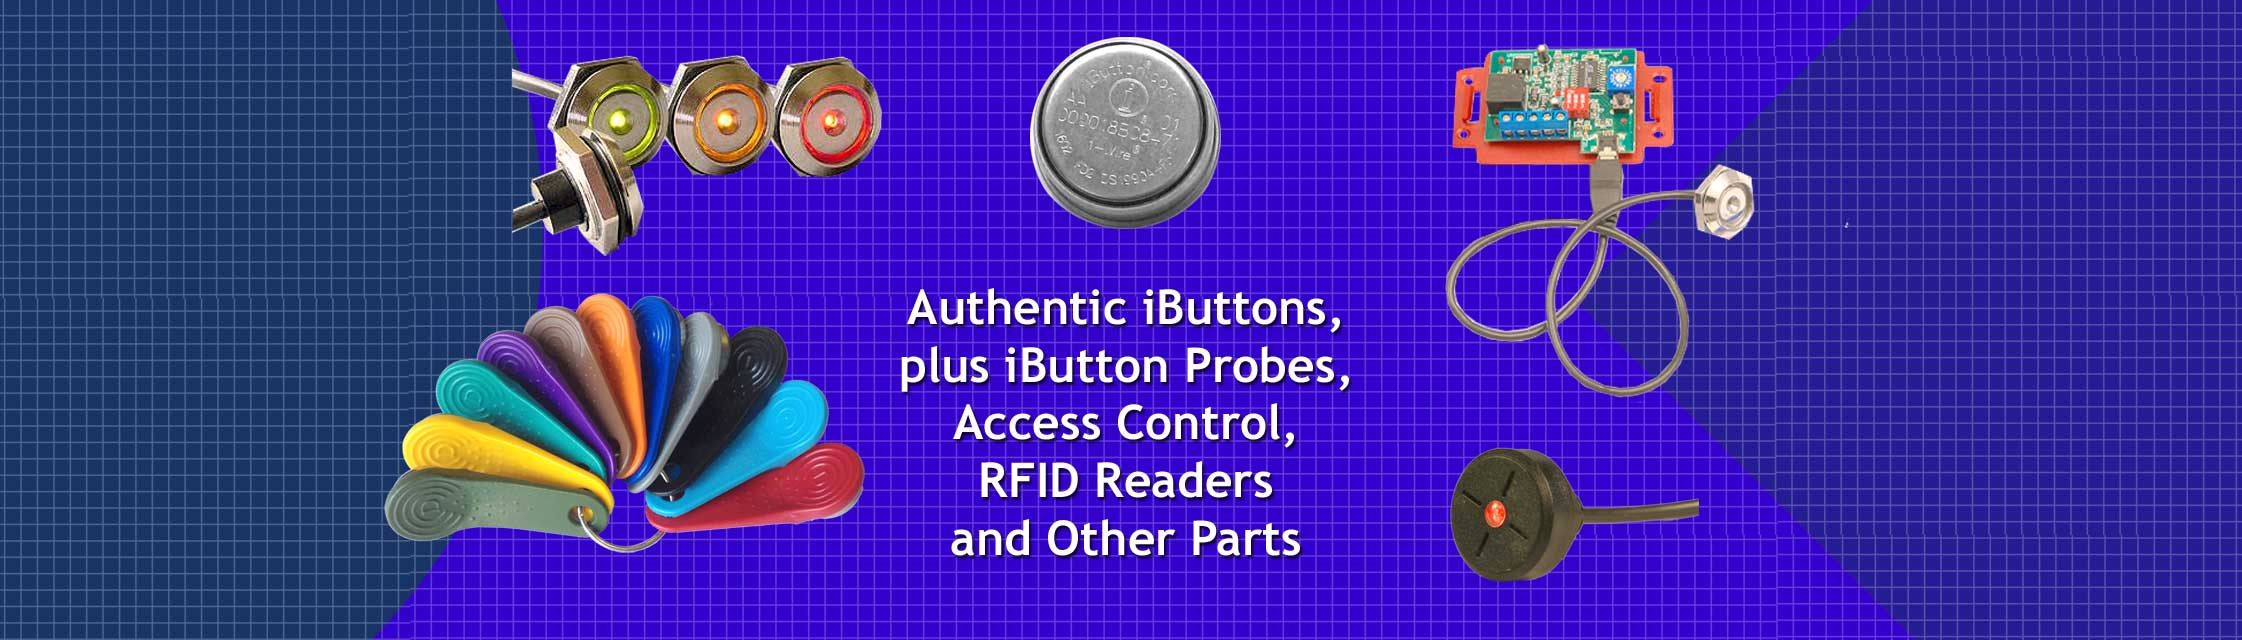 Authentic iButtons, plus iButton Probes, Access Control, RFID Readers and other parts